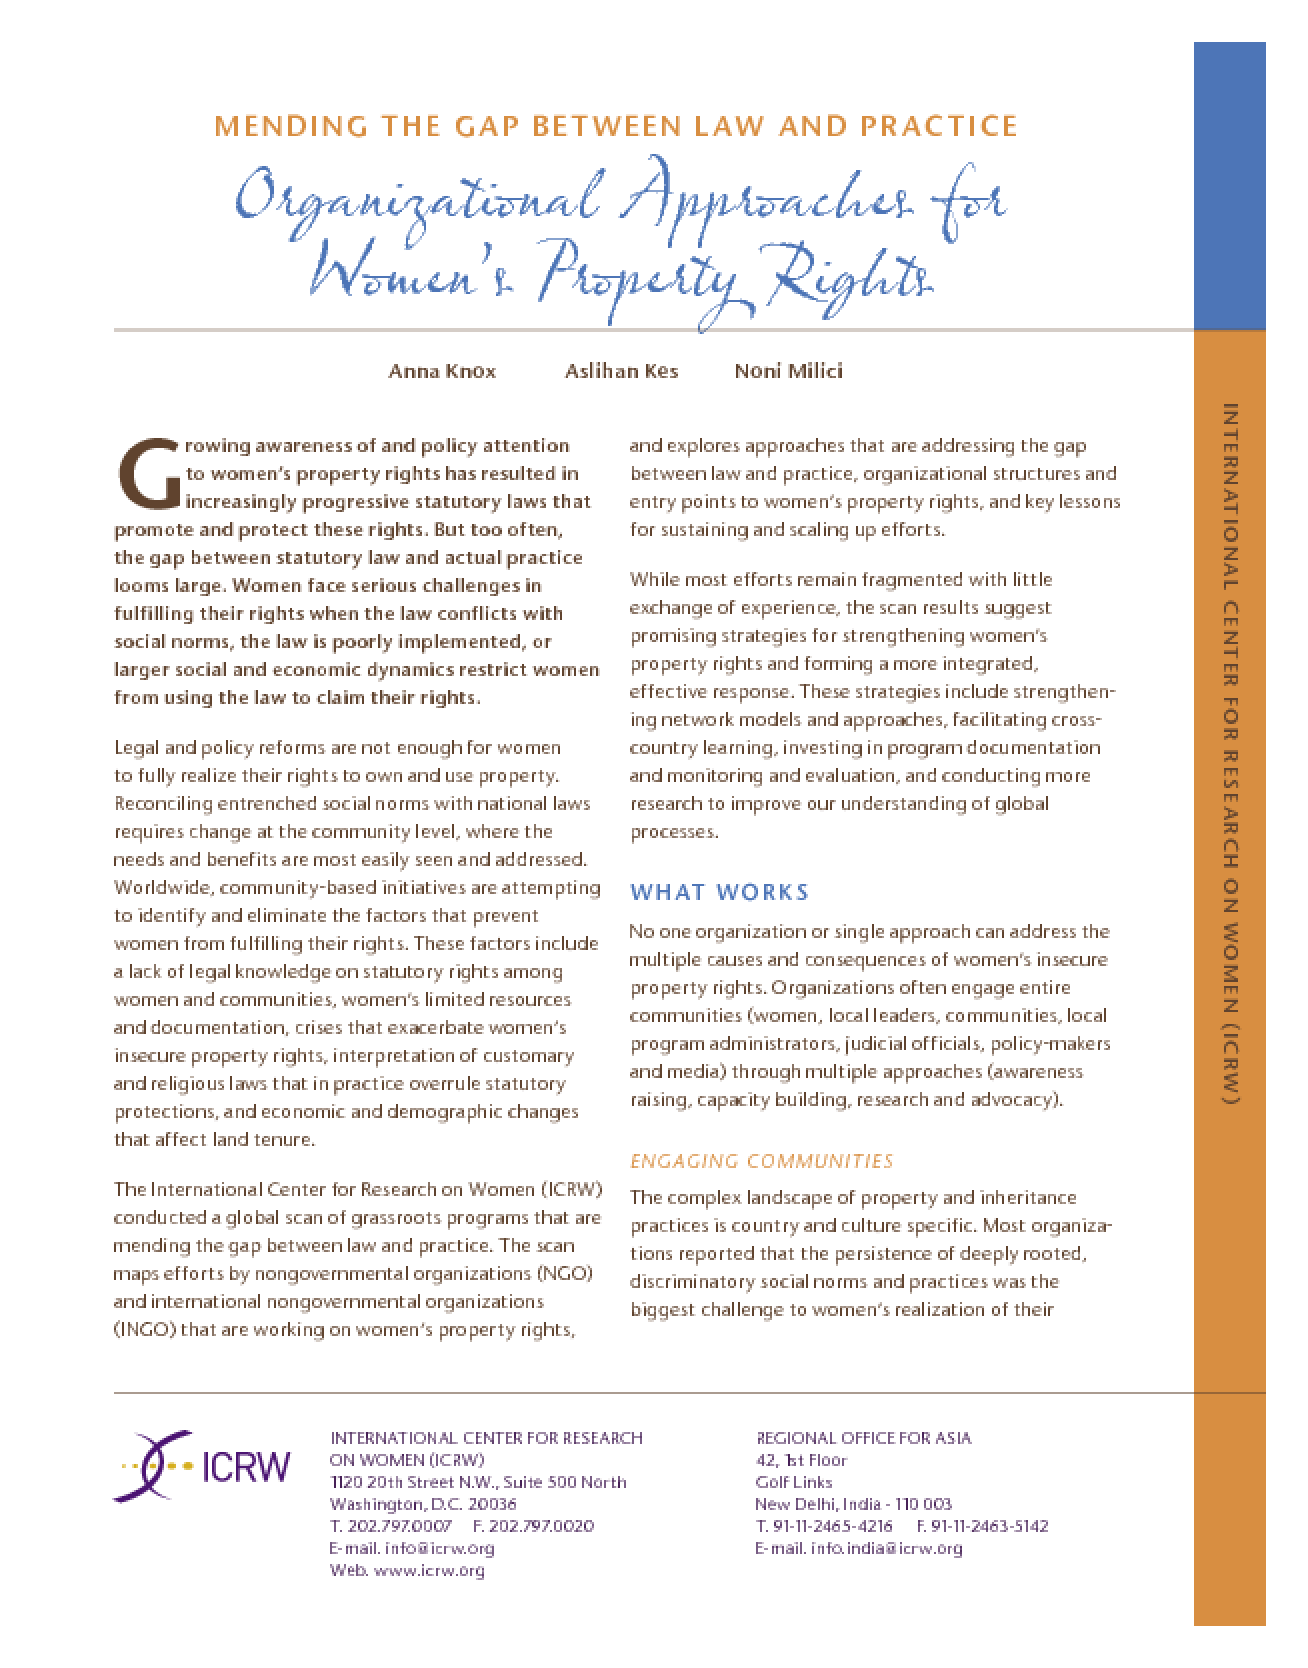 Mending the Gap Between Law and Practice, Organizational Approaches for Women's Property Rights